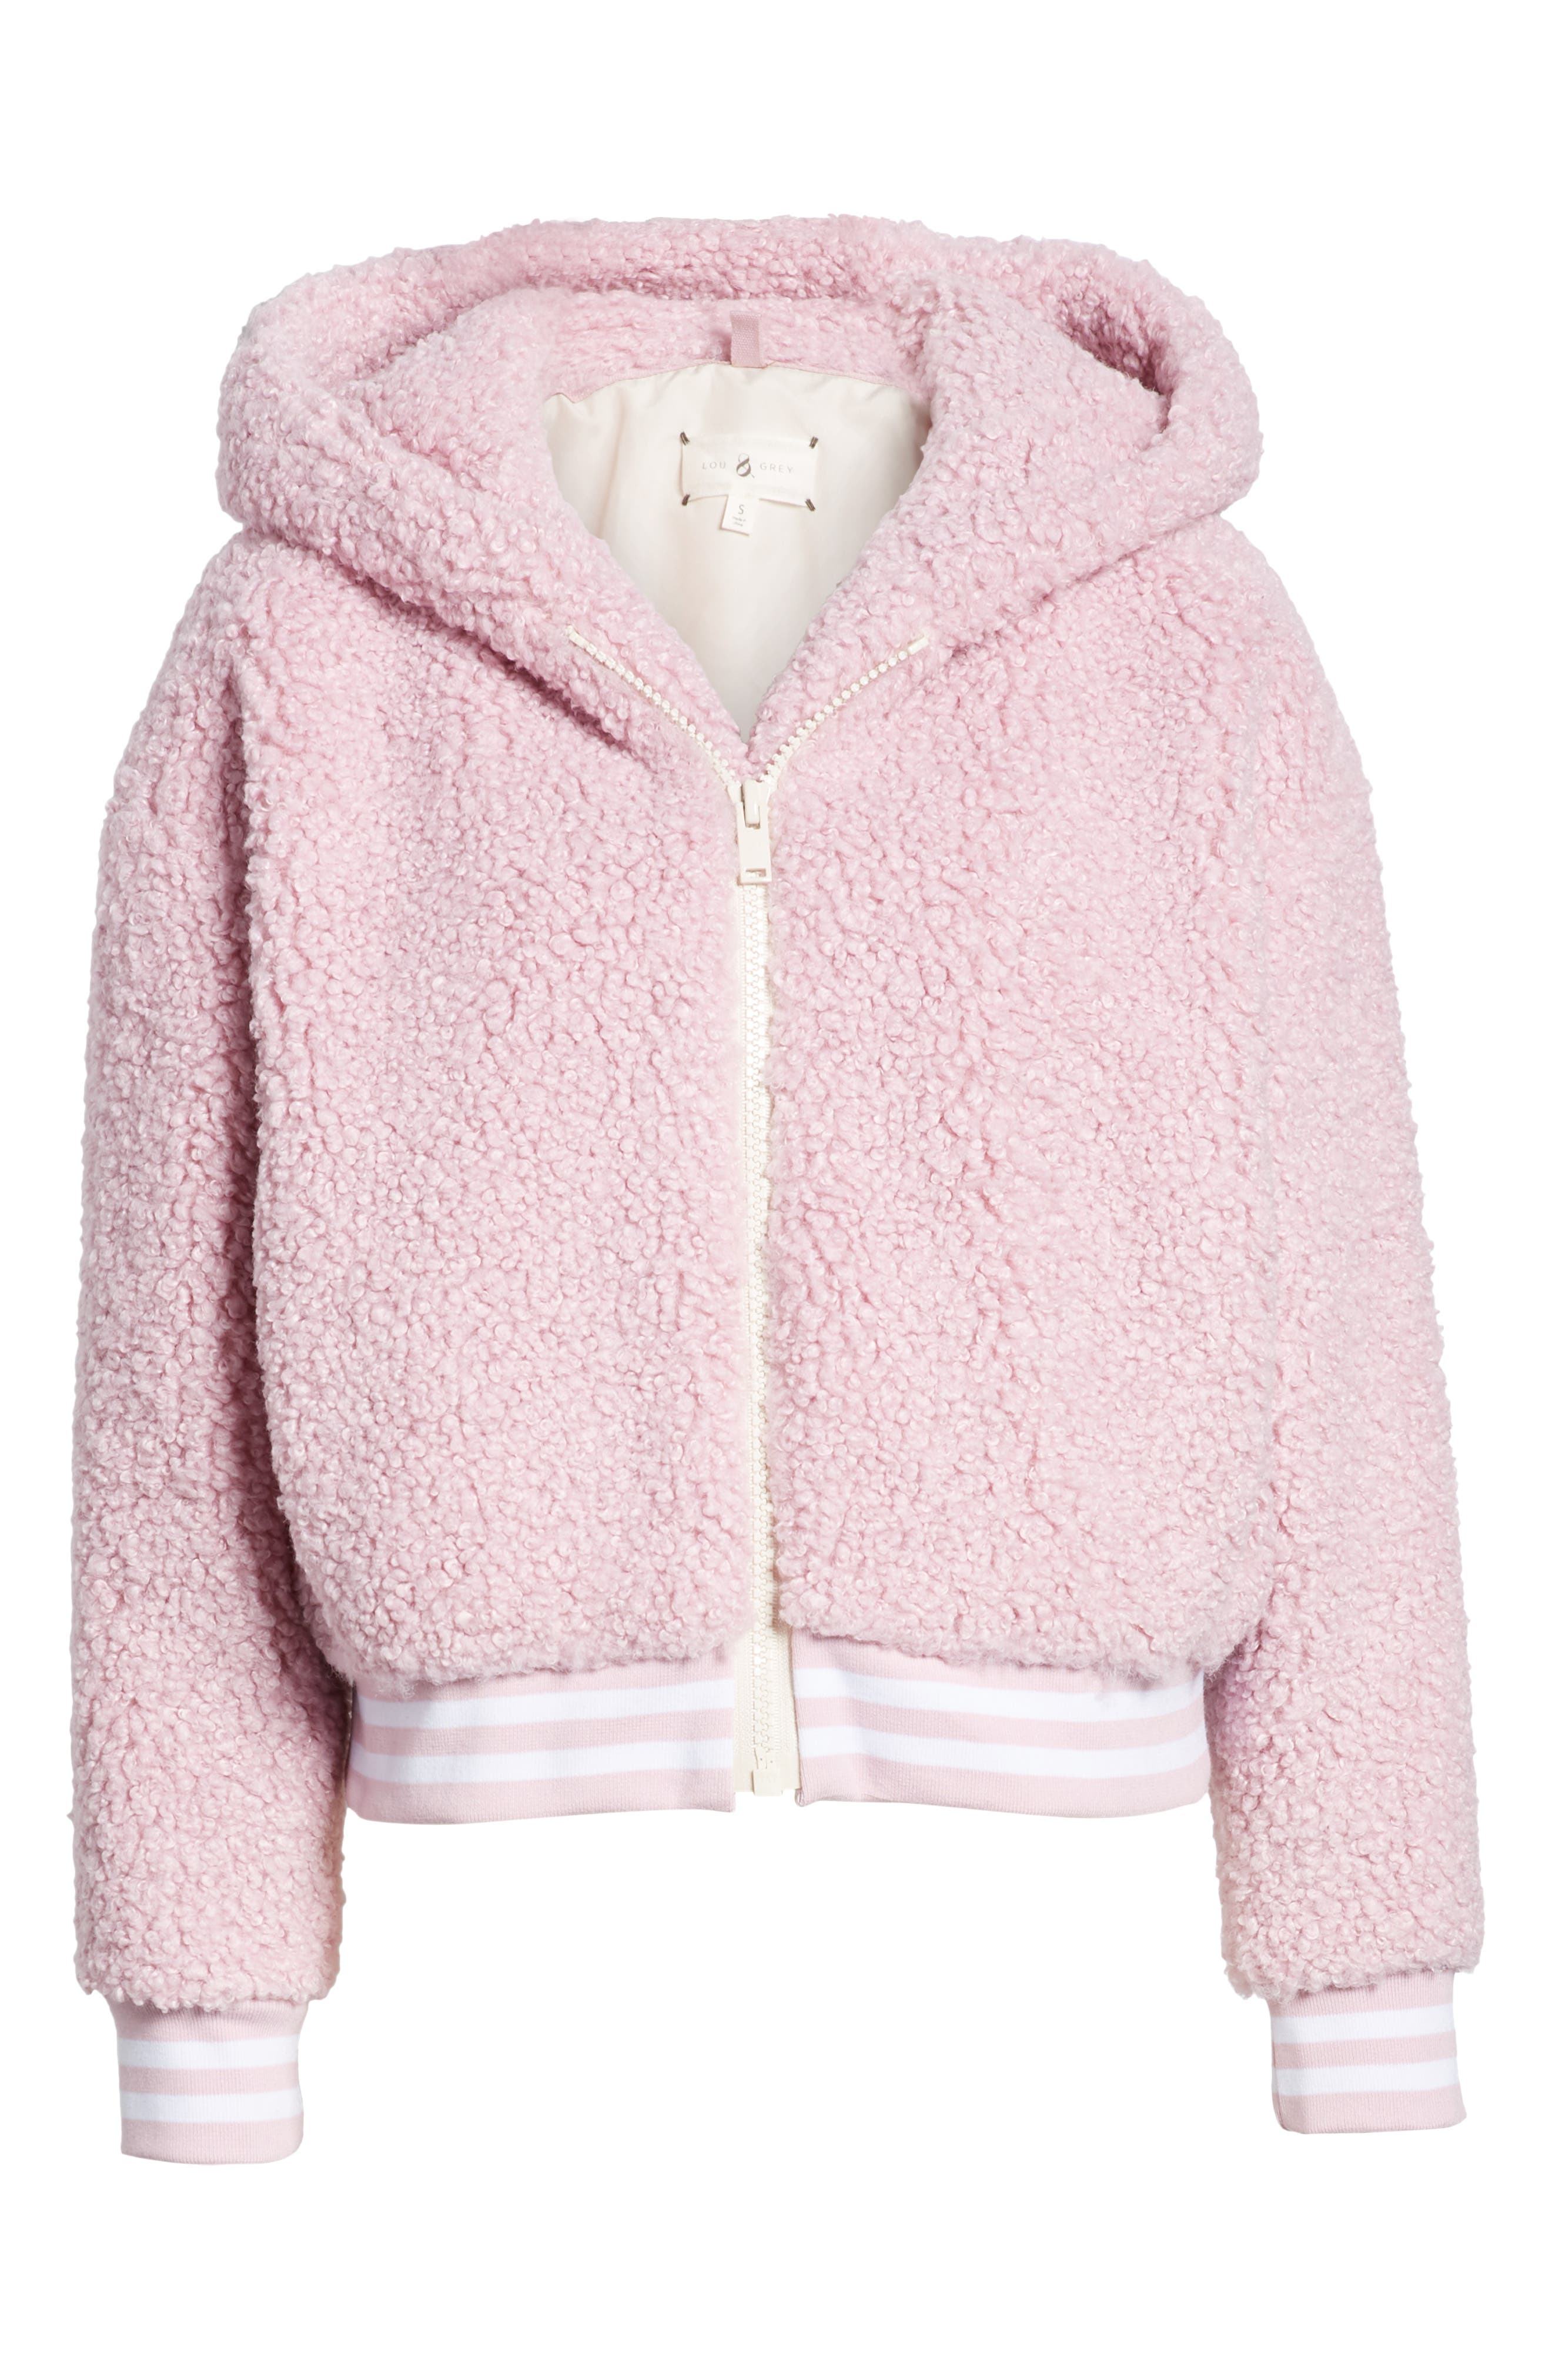 Frida Faux Fur Hooded Jacket,                             Alternate thumbnail 6, color,                             WINSOME ORCHID 3741